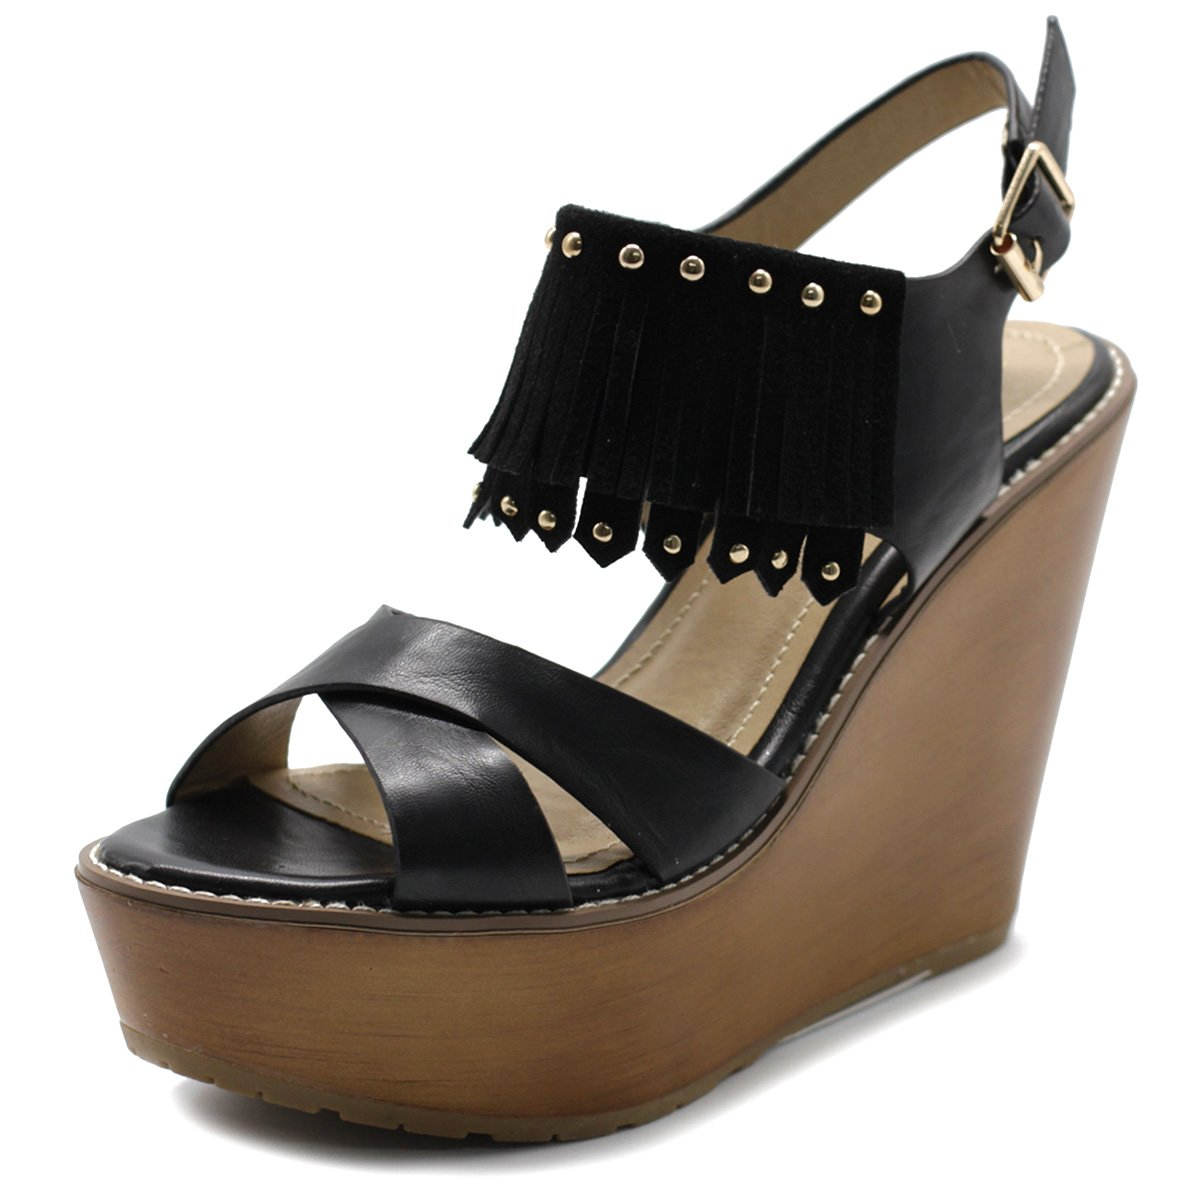 Ollio Womens Shoe Burnish Vintage Faded Fringe Wedge Heel Sandal B01CPOAESG 8 B(M) US|Black